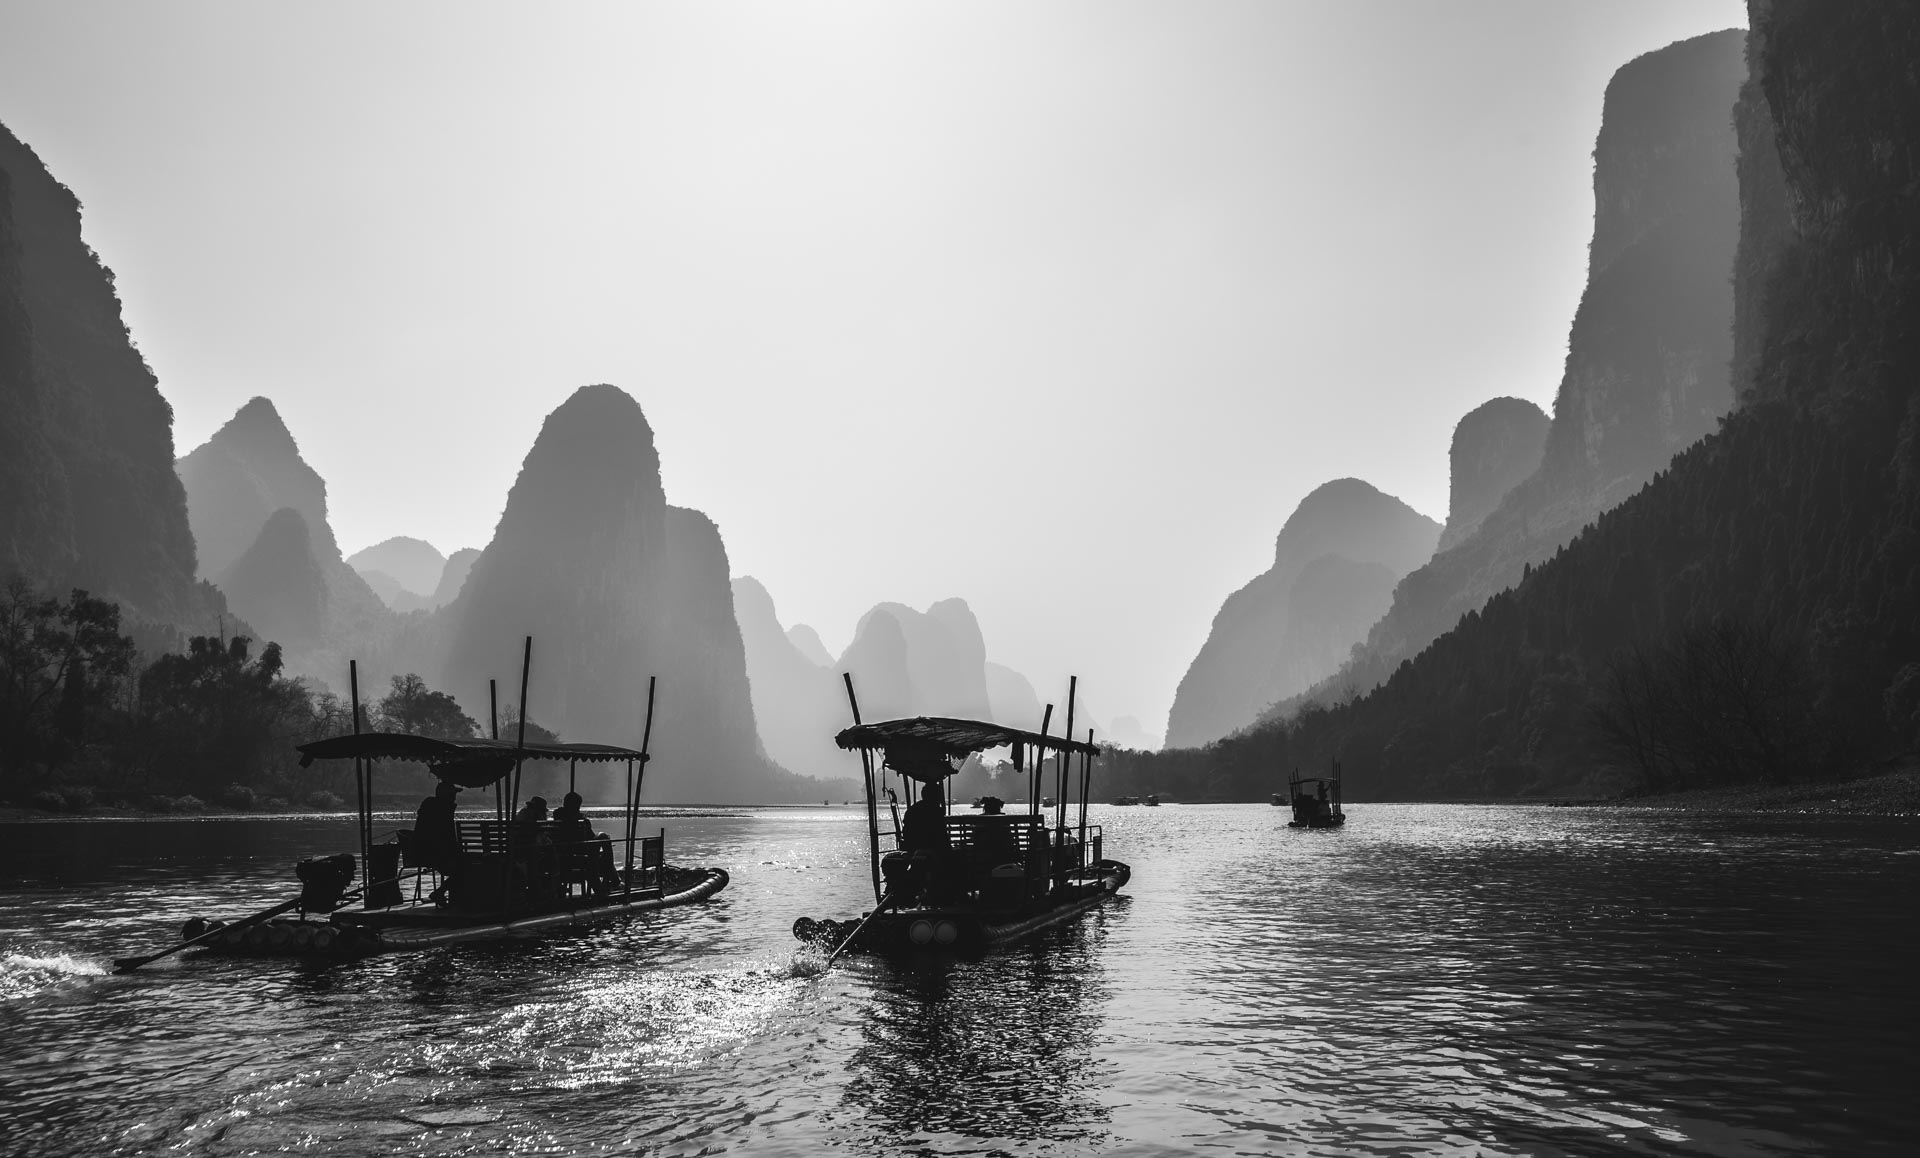 Rafts on the Li River. China